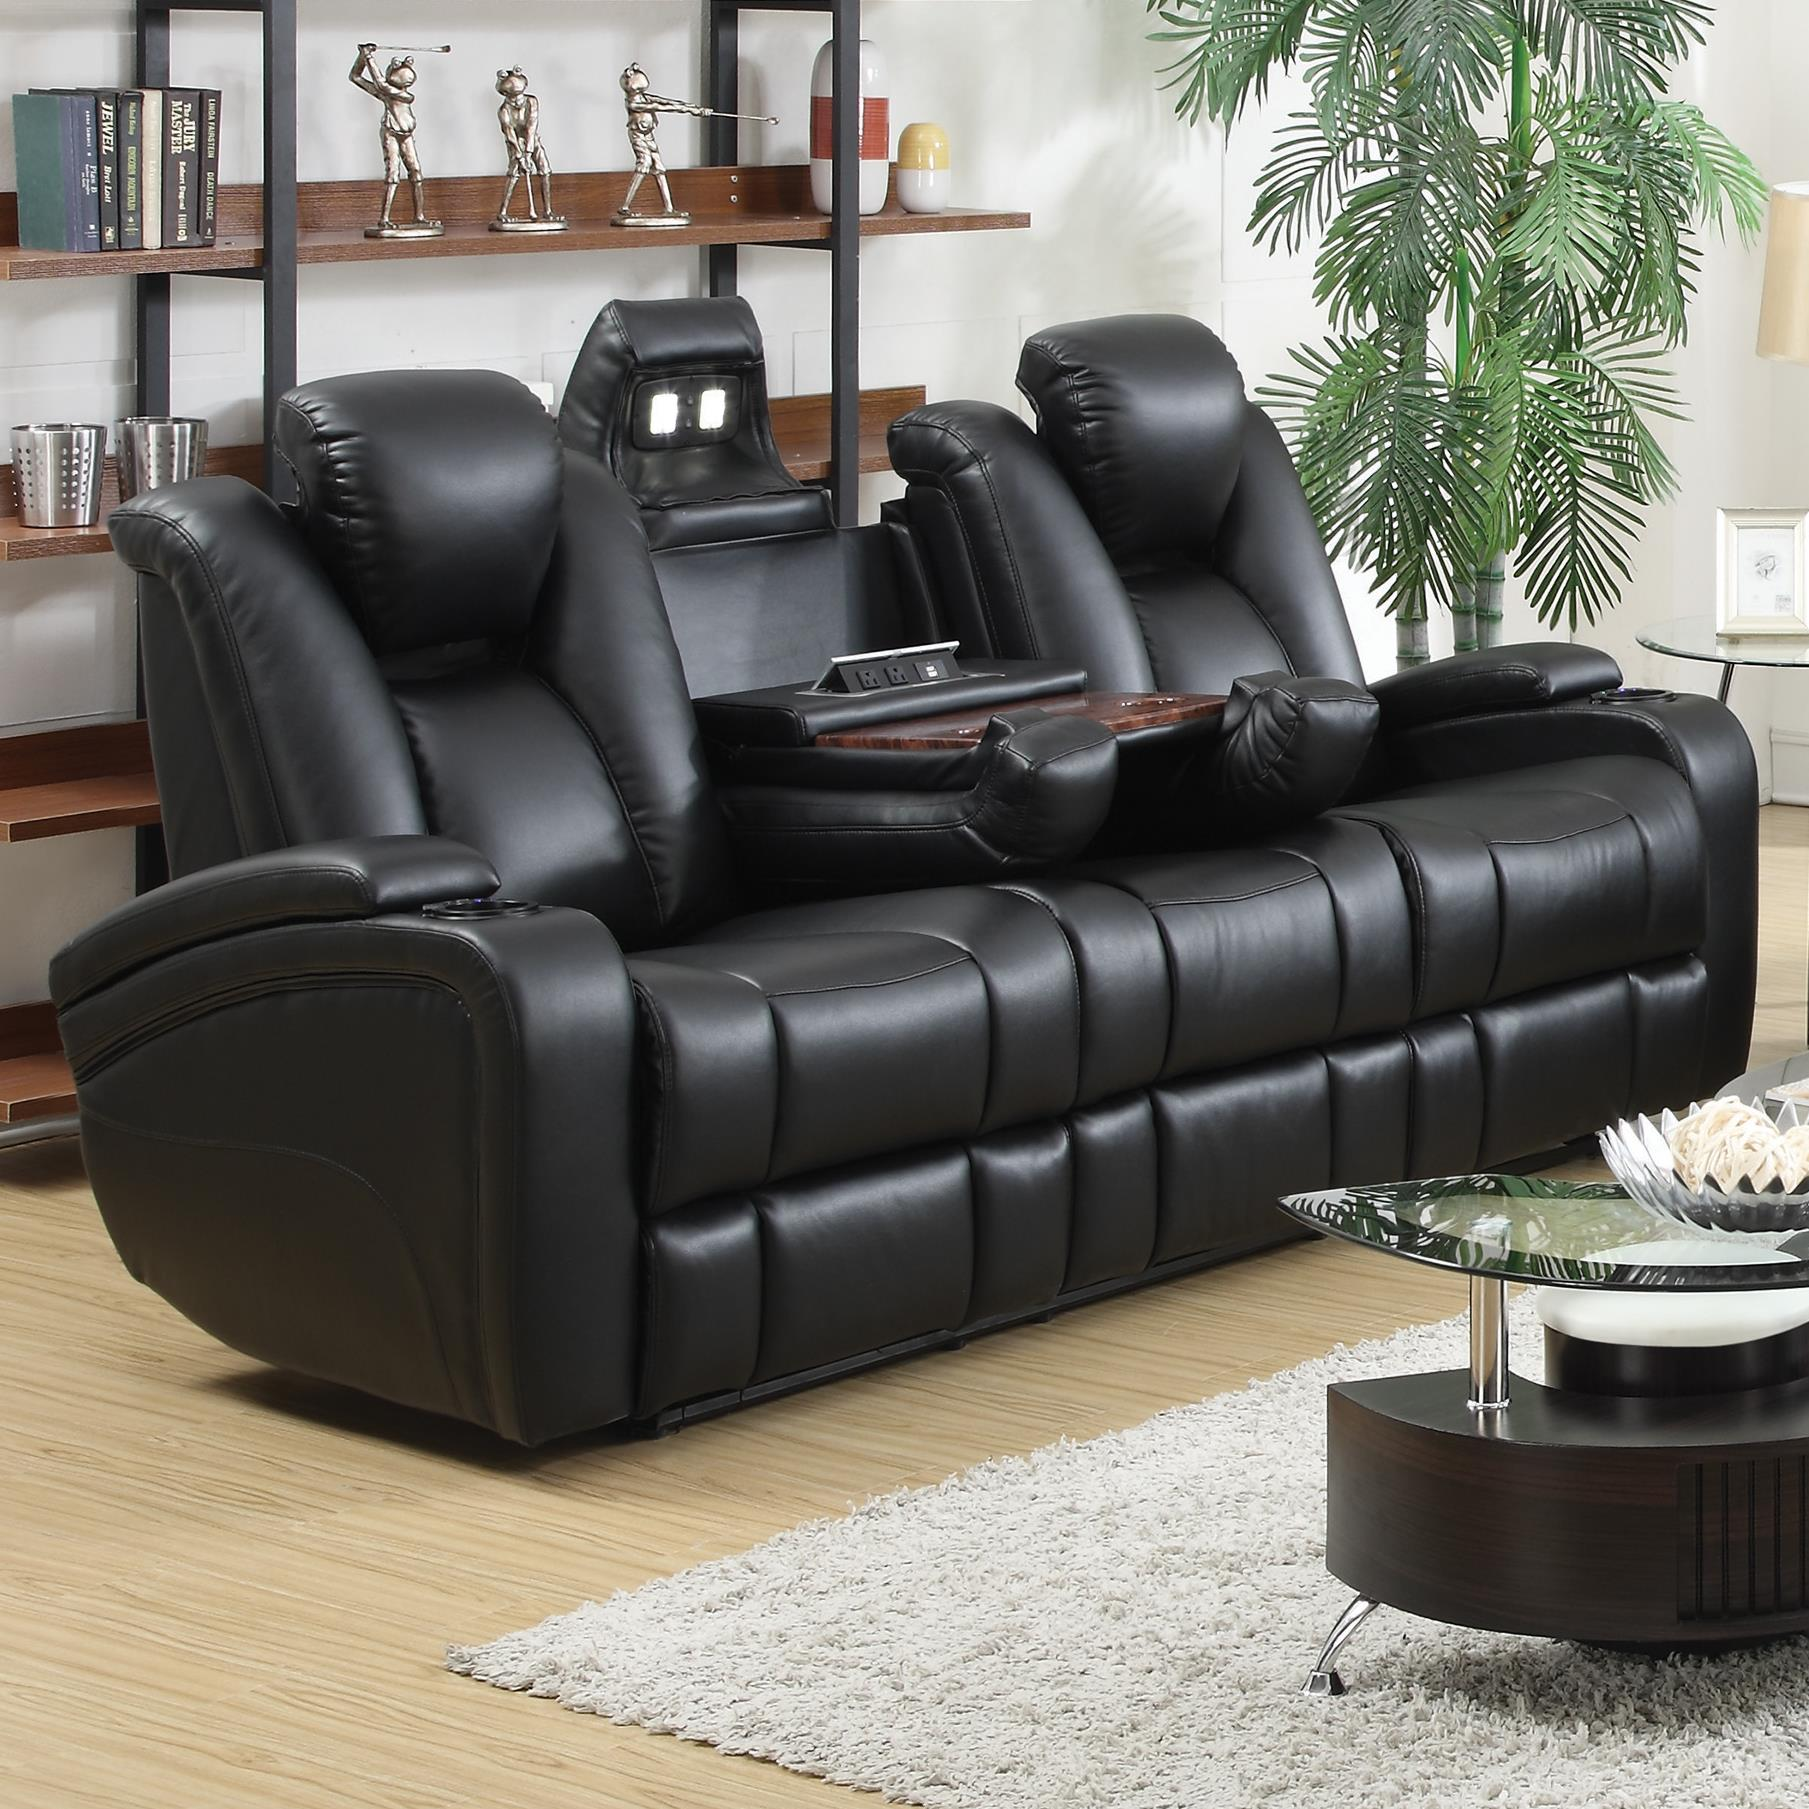 Delange Leather Power Reclining Sofa Theater Seats with Power ...